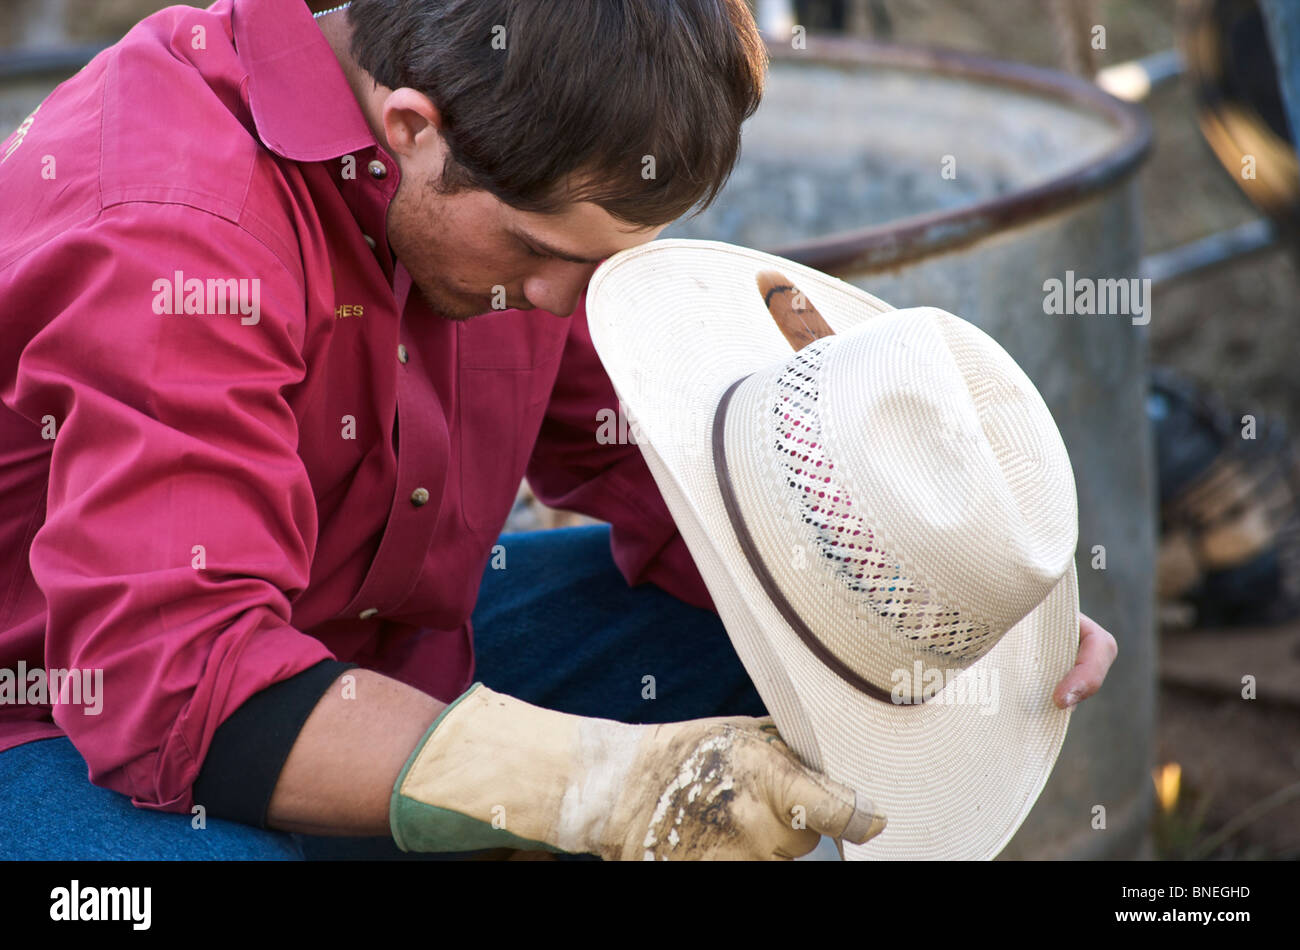 Cowboy sitting  holding hat looking disappointed after rodeo event at a   PRCA In Texas, USA - Stock Image